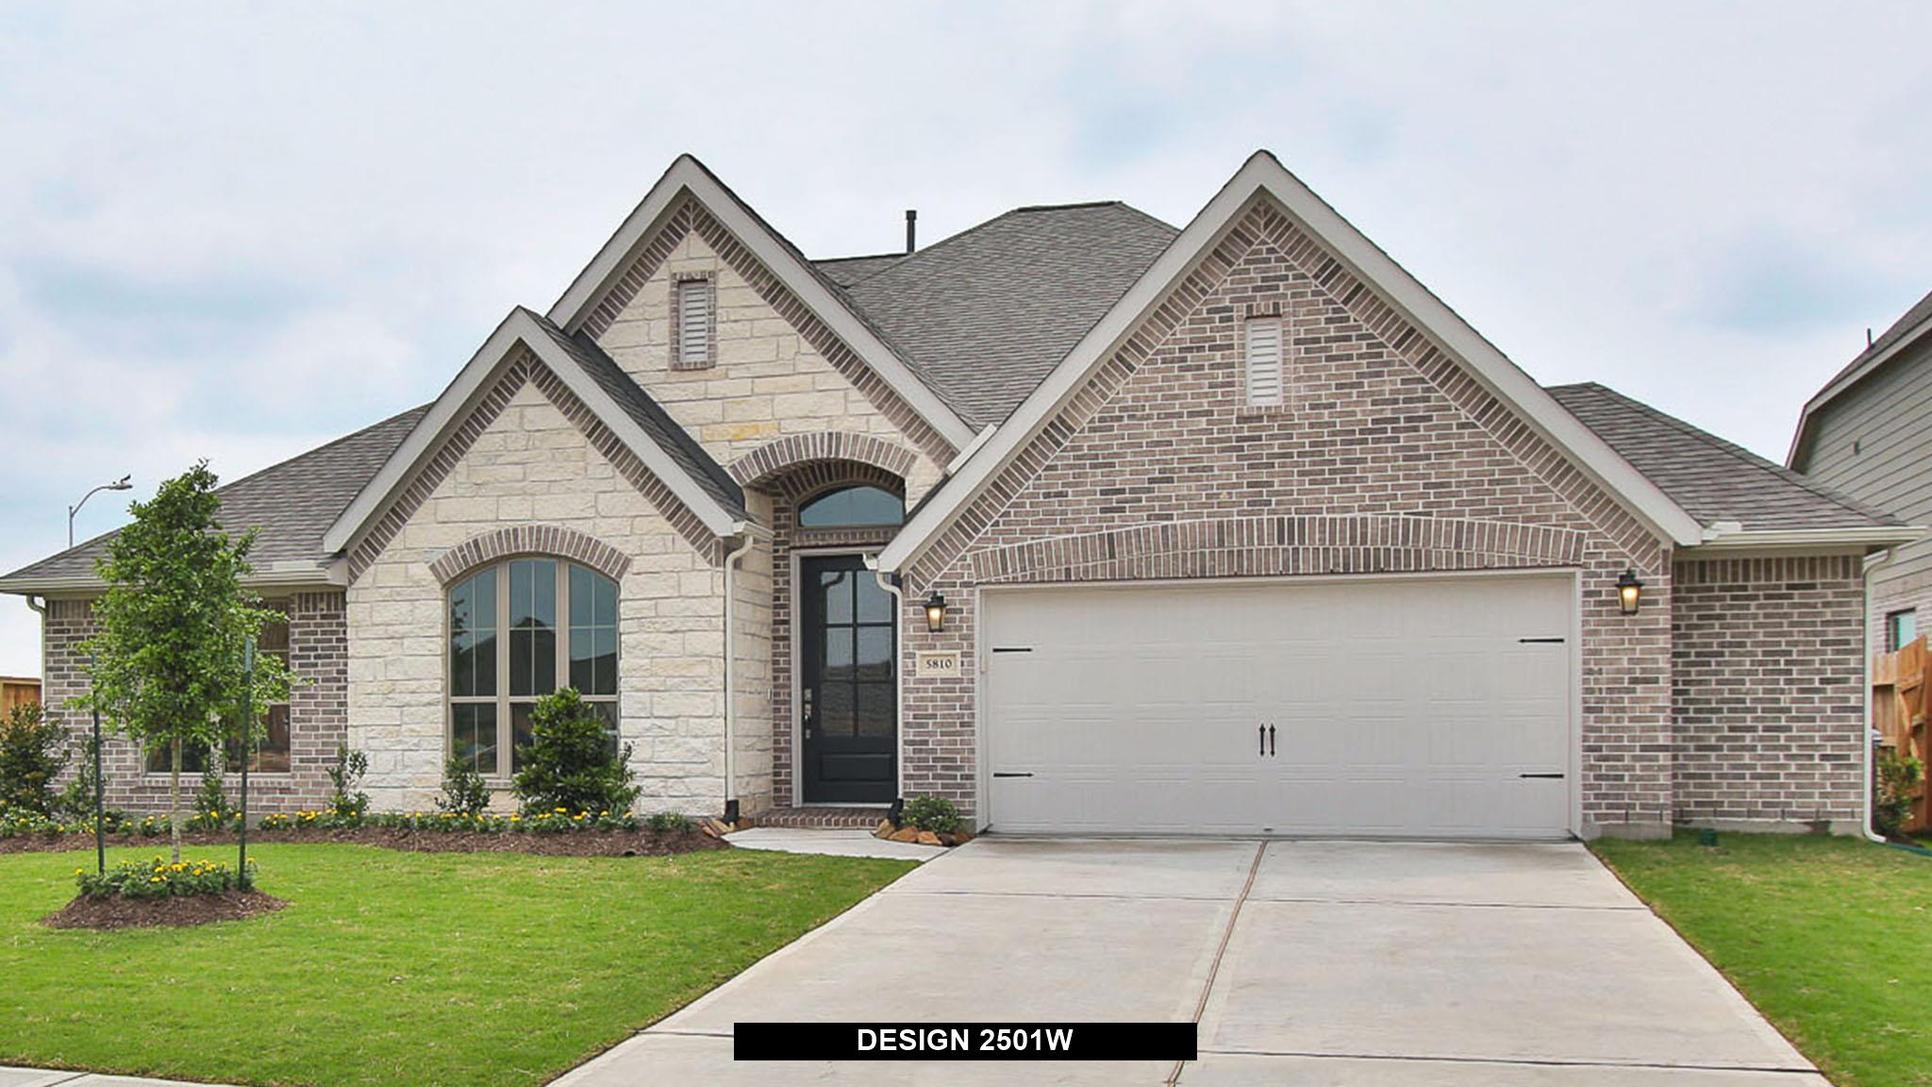 Plan 2501W:Representative photo.  Features and specifications may vary by community.